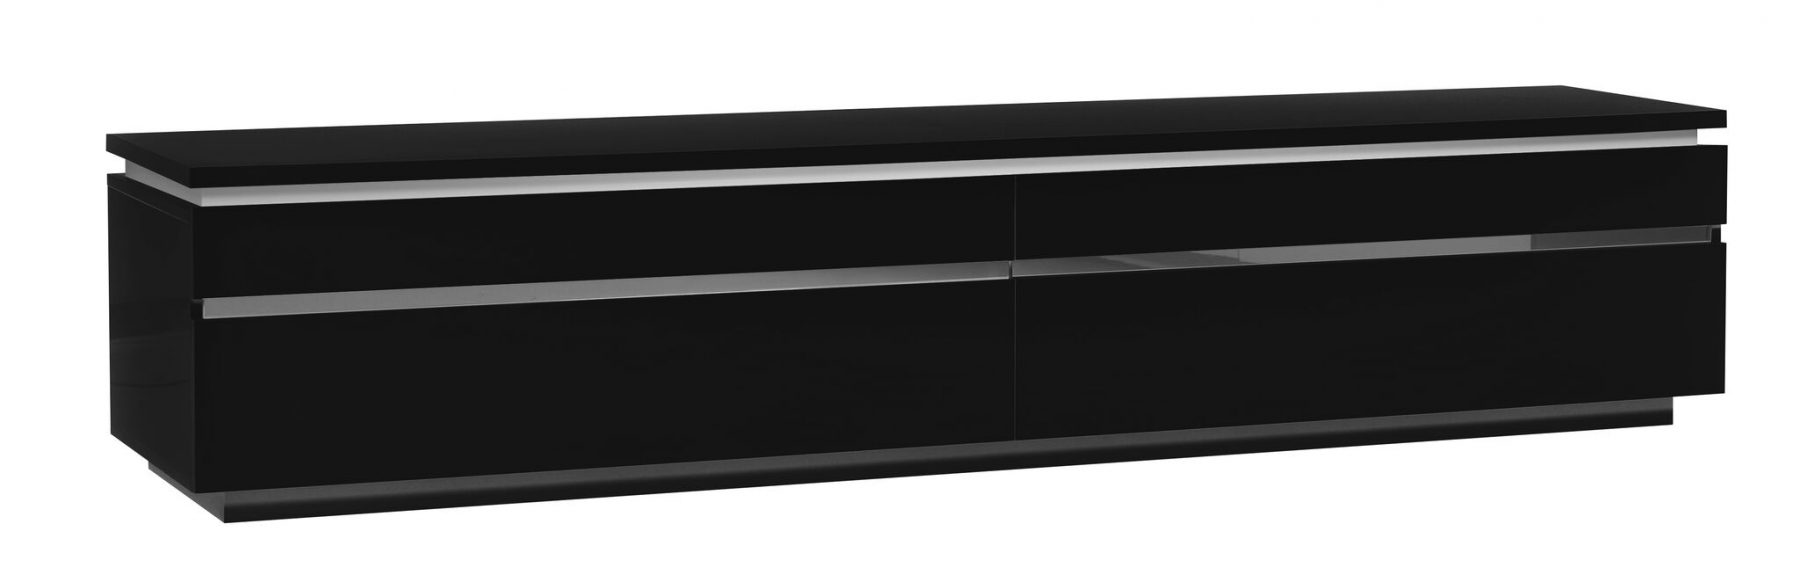 Logan Black Gloss TV Unit 5